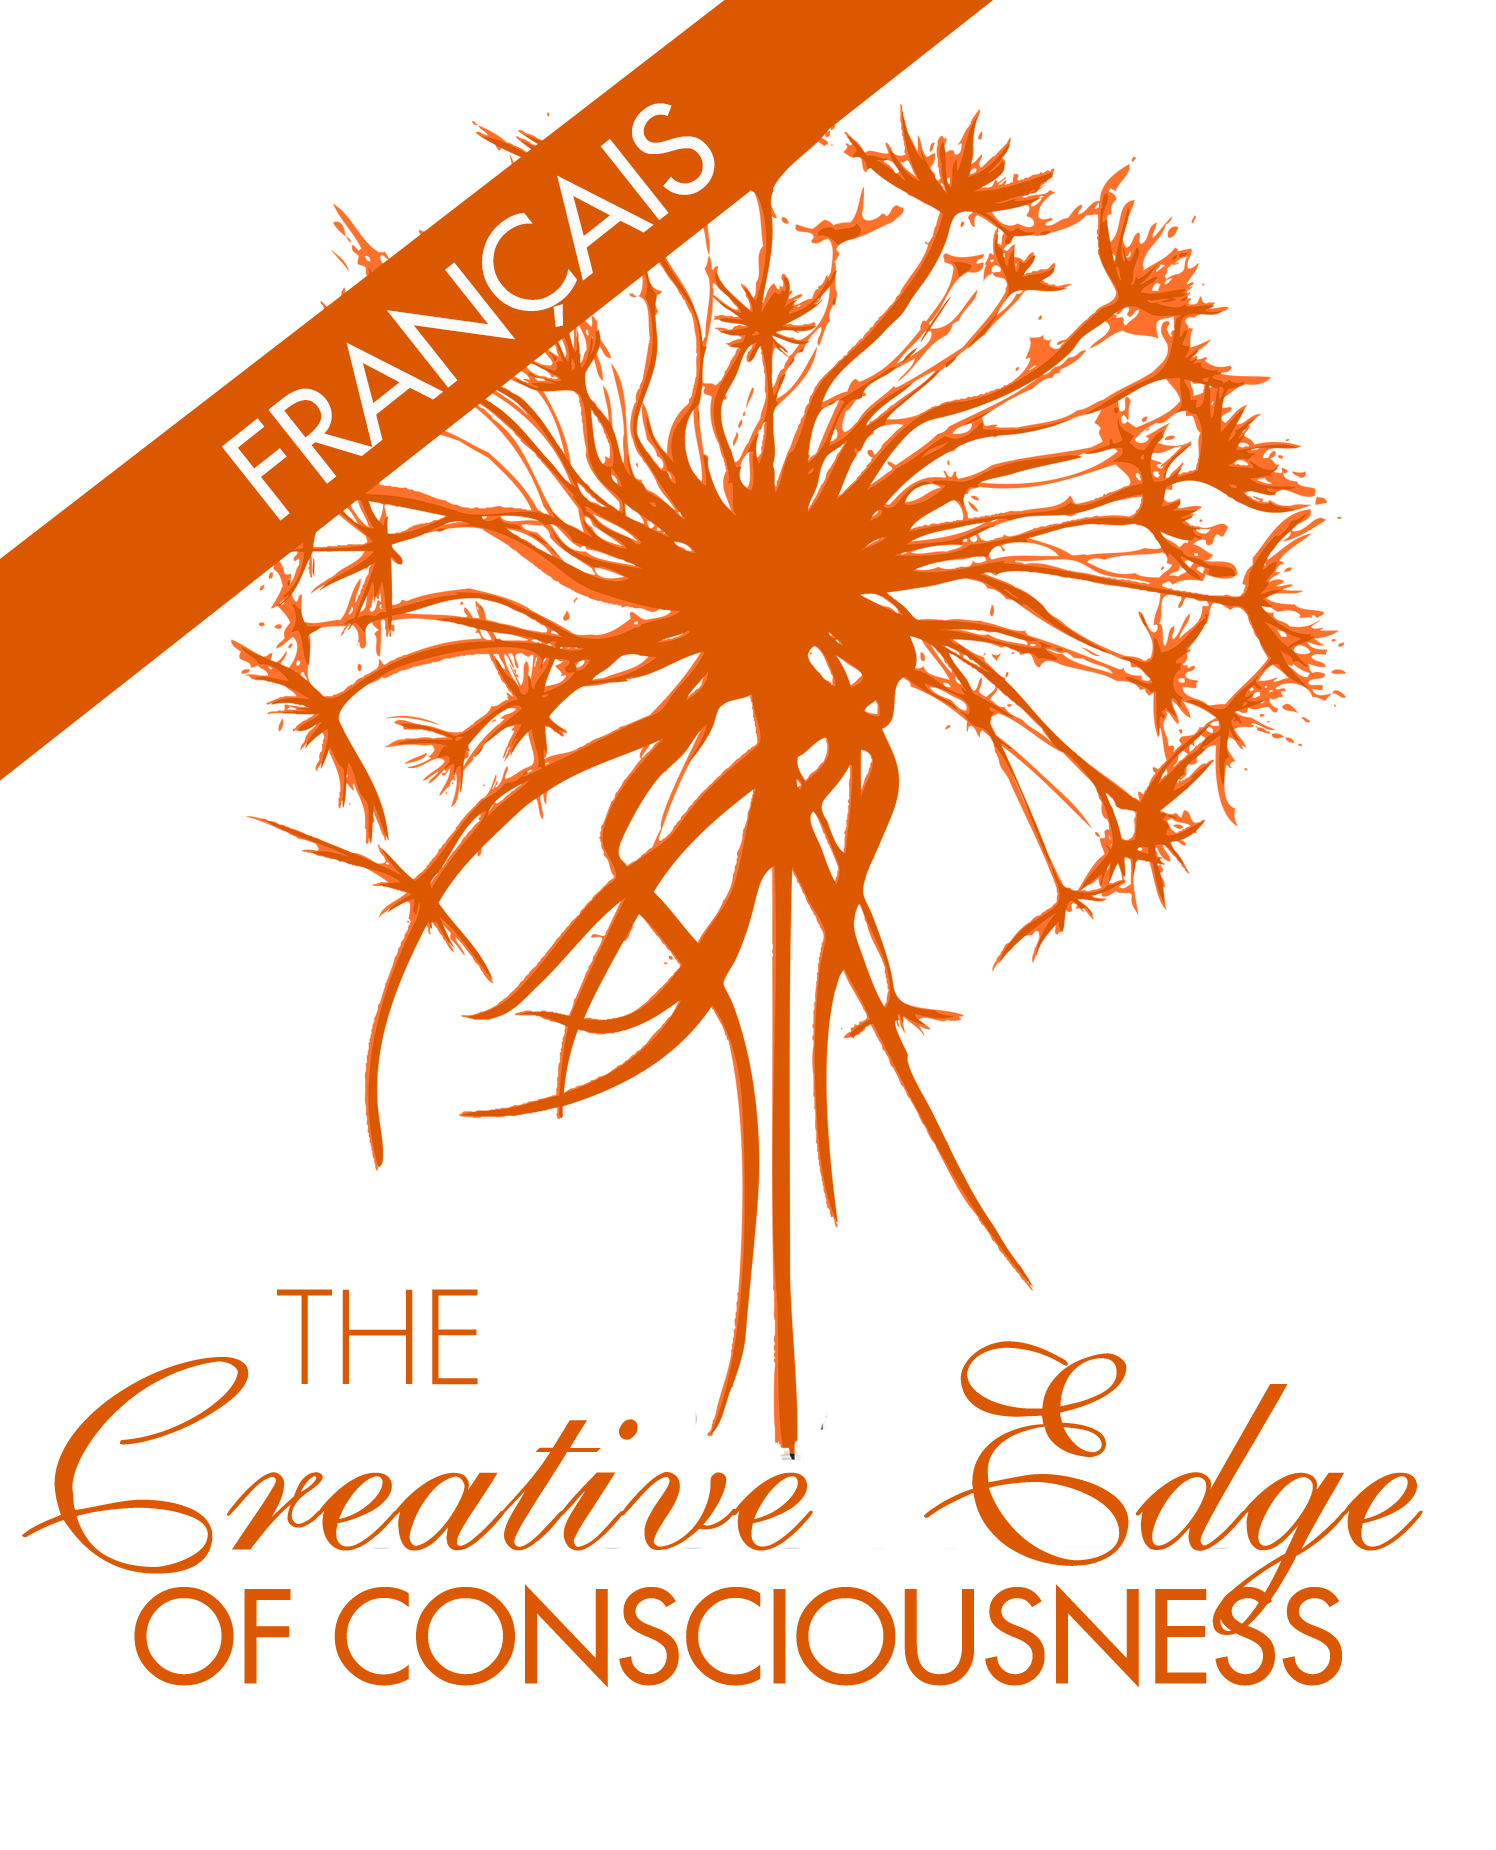 Le Club Creative Edge of Consciousness (Creative Edge of Consciousness - French)